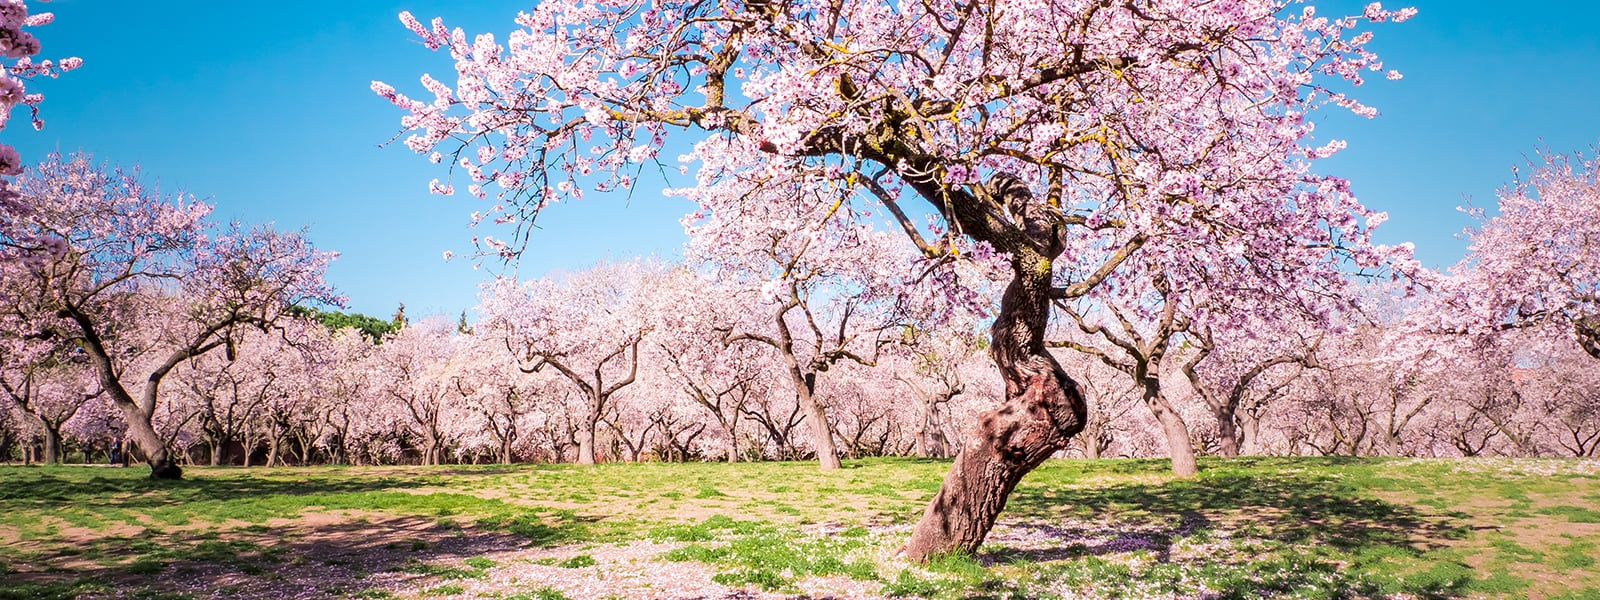 Almond Tree in Full Bloom | Woodruff